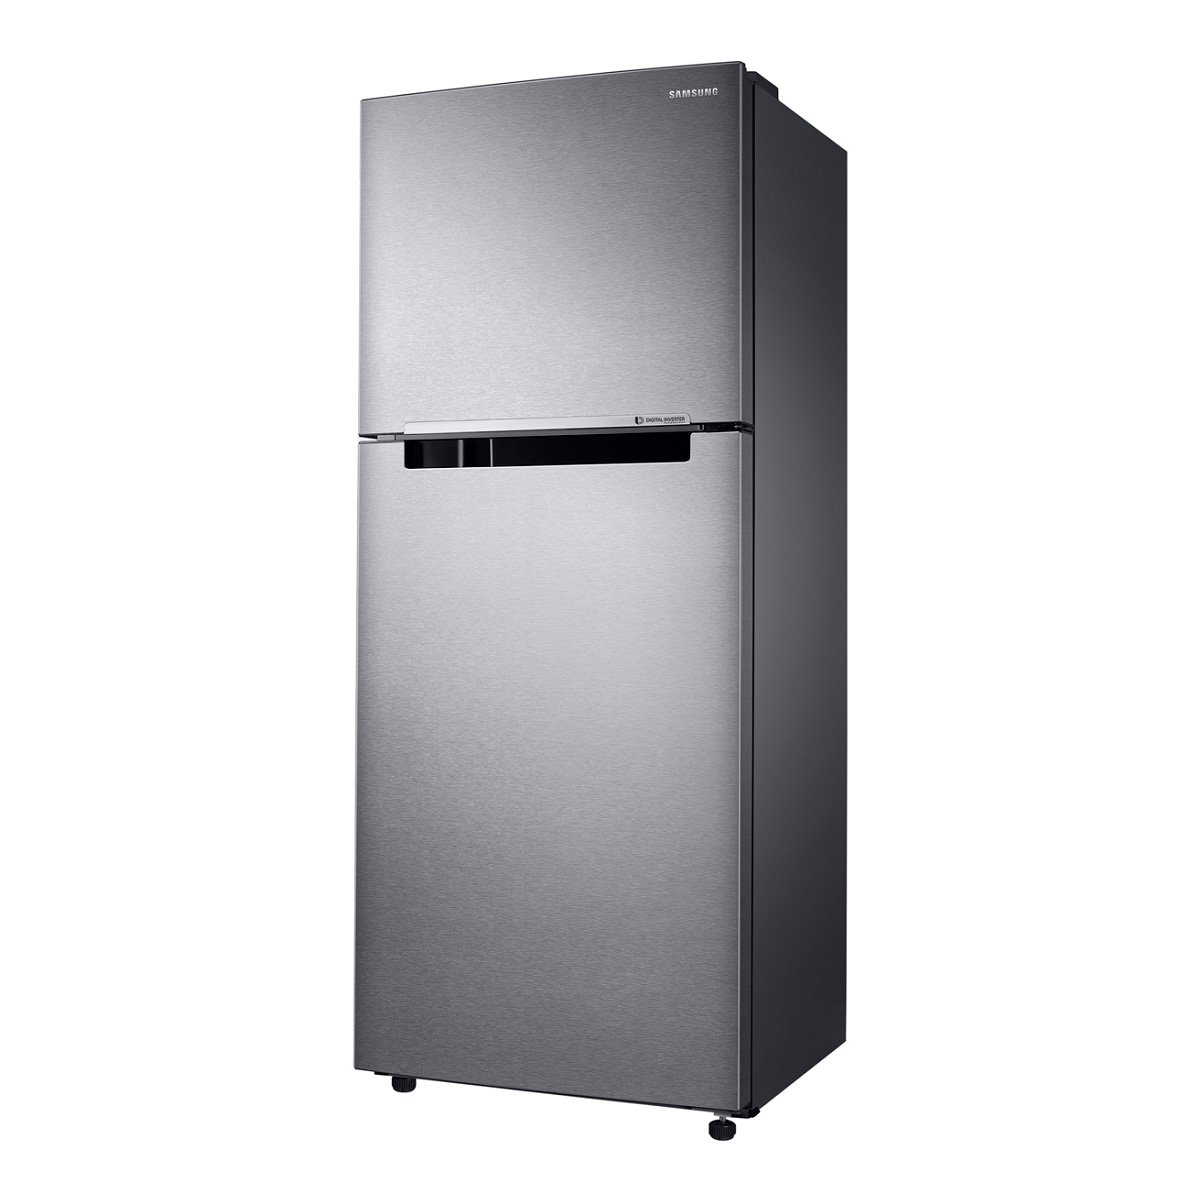 Samsung SR400LSTC 400Litres Top Mount Fridge with Twin Cooling Plus 35618